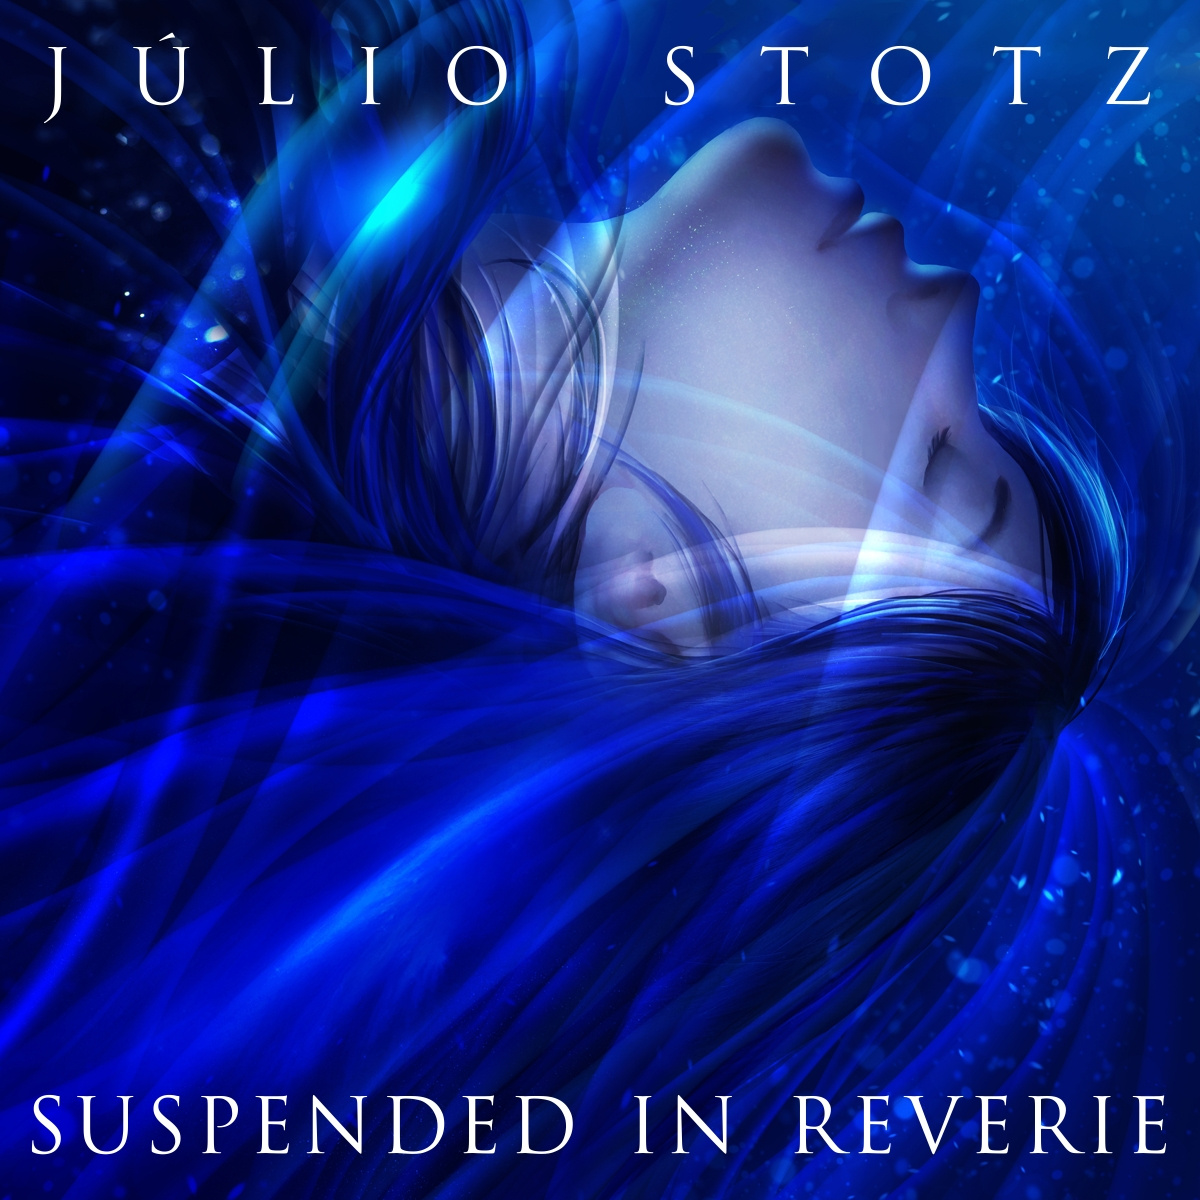 Julio stotz suspended in reverie